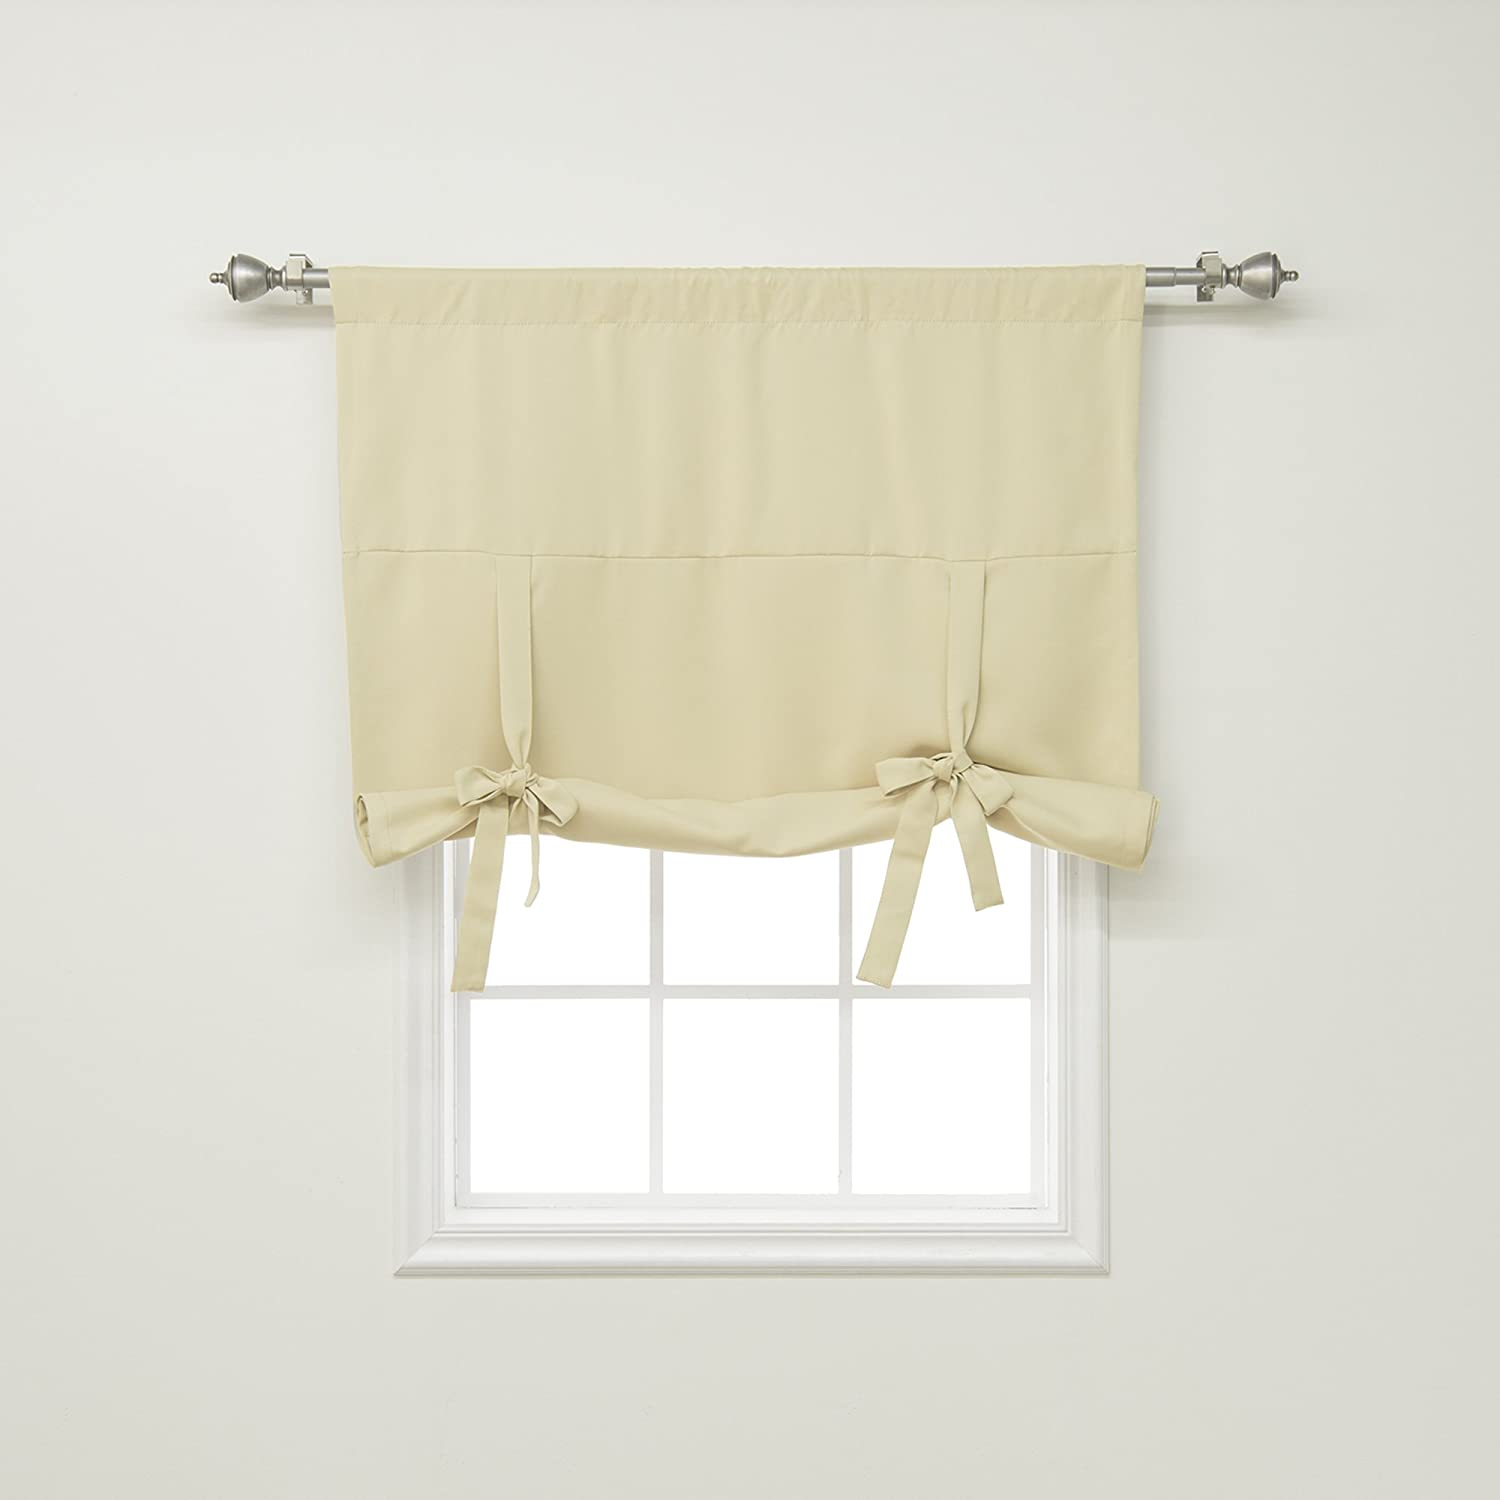 Best Home Fashion Thermal Insulated Blackout Tie-Up Window Shade 1 Panel Rod Pocket Chocolate 42W x 63L - BEWBU BO-TIE-UP-SOLID-CHOCOLATE